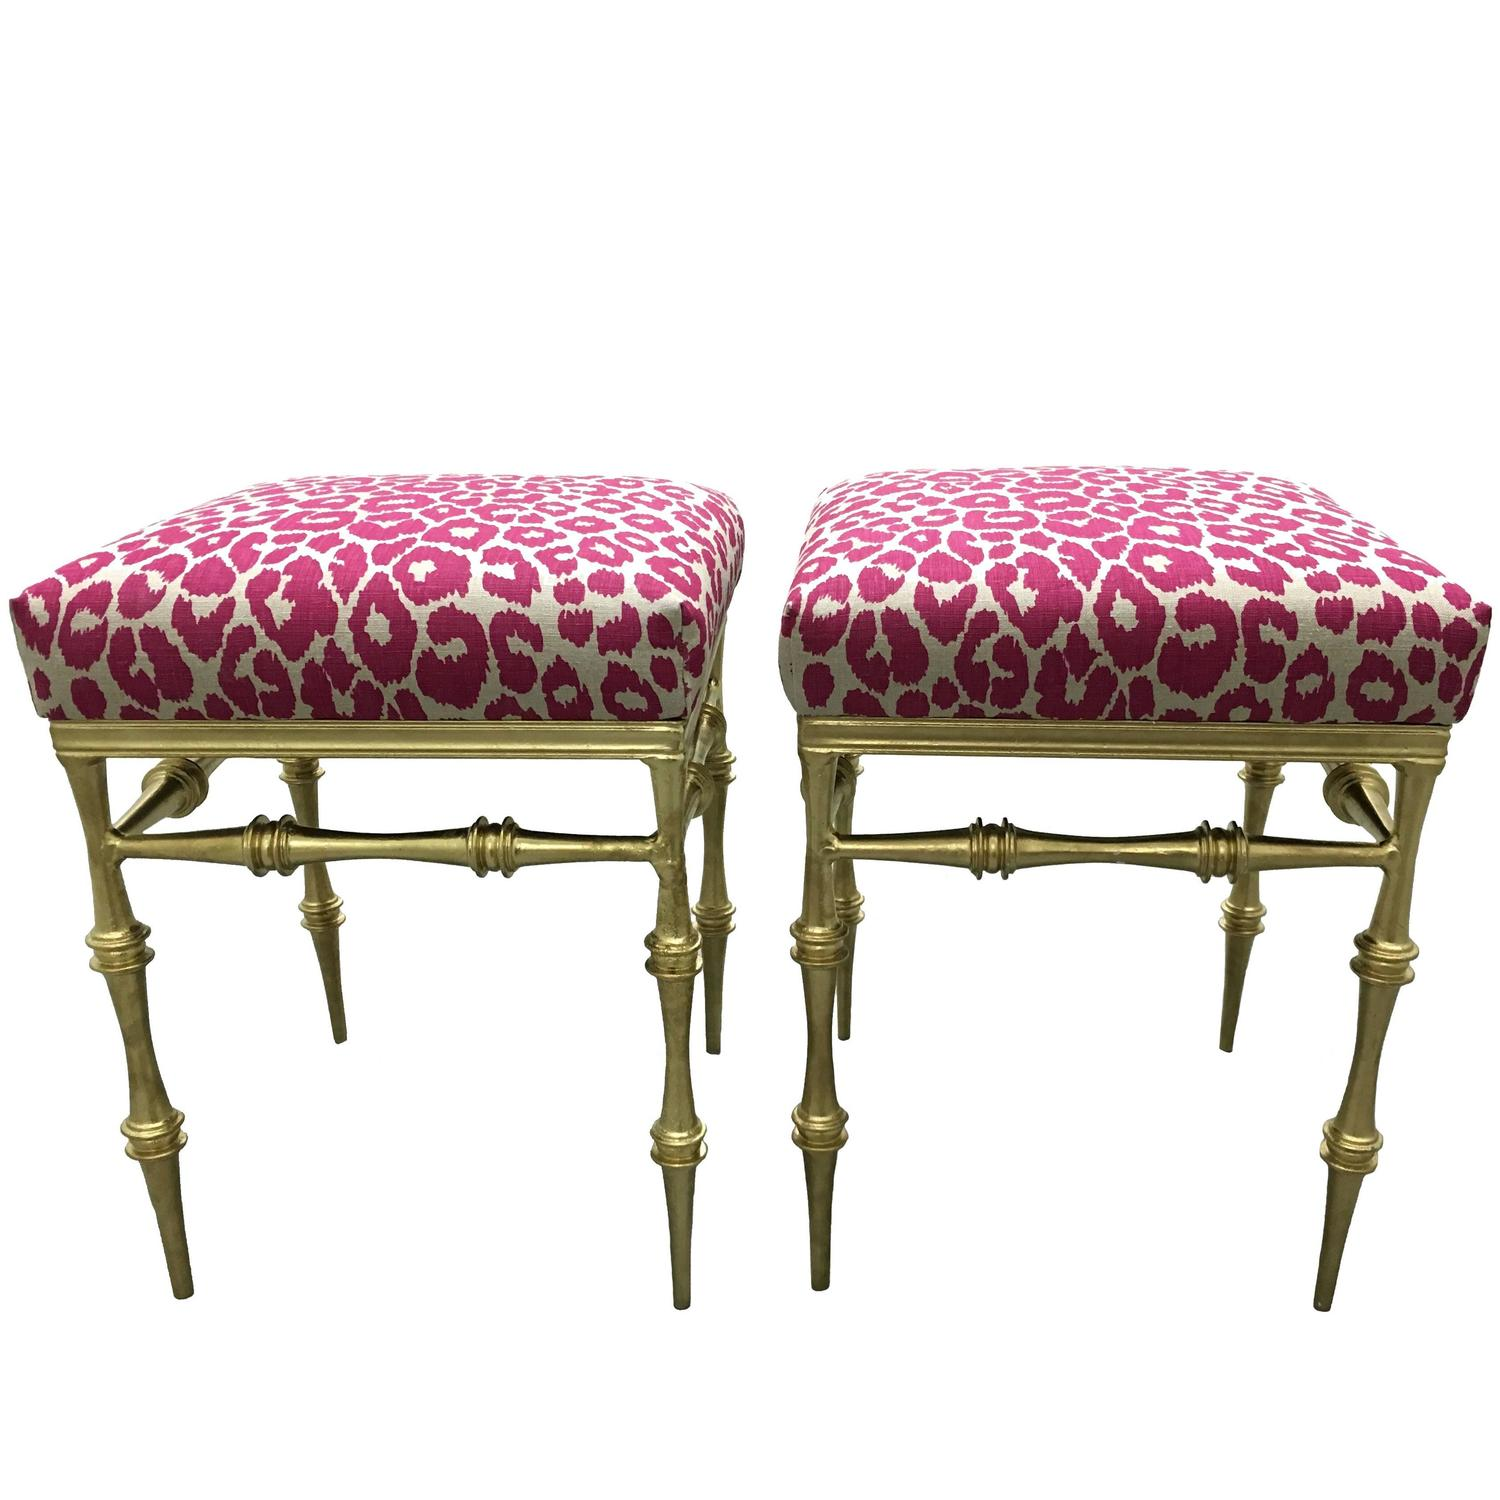 Pair Of Gilt Metal Pink Leopard Benches For Sale At 1stdibs